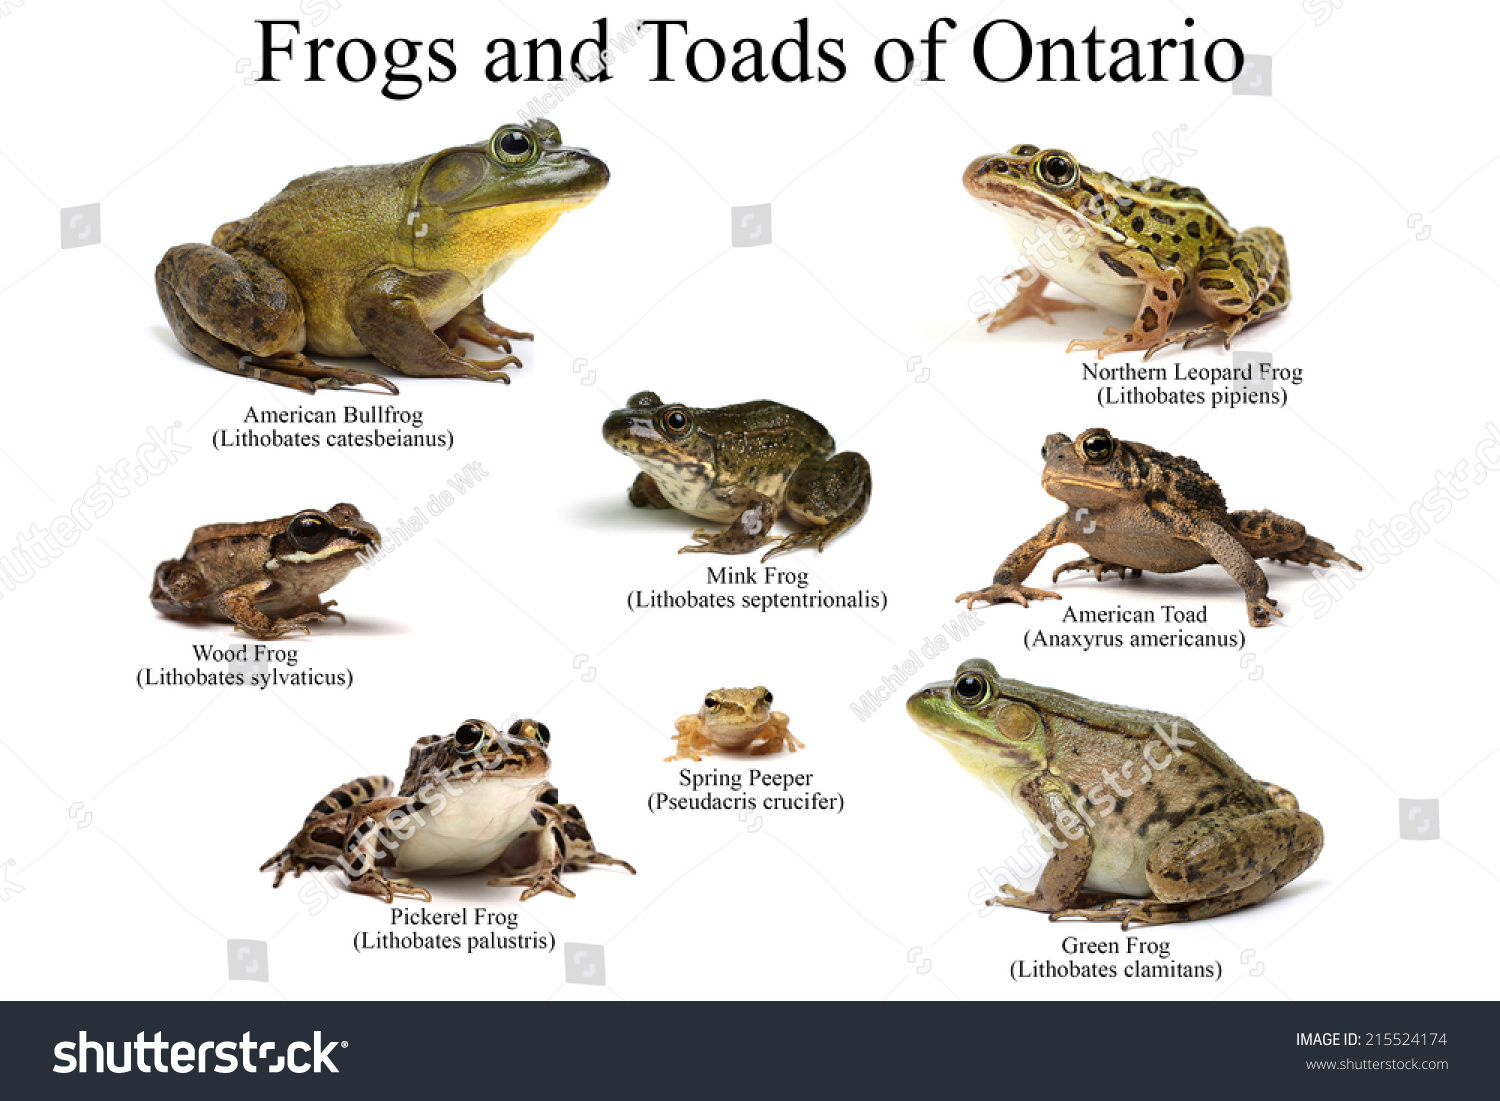 Frogs Toads Ontario On White Background Stock Photo